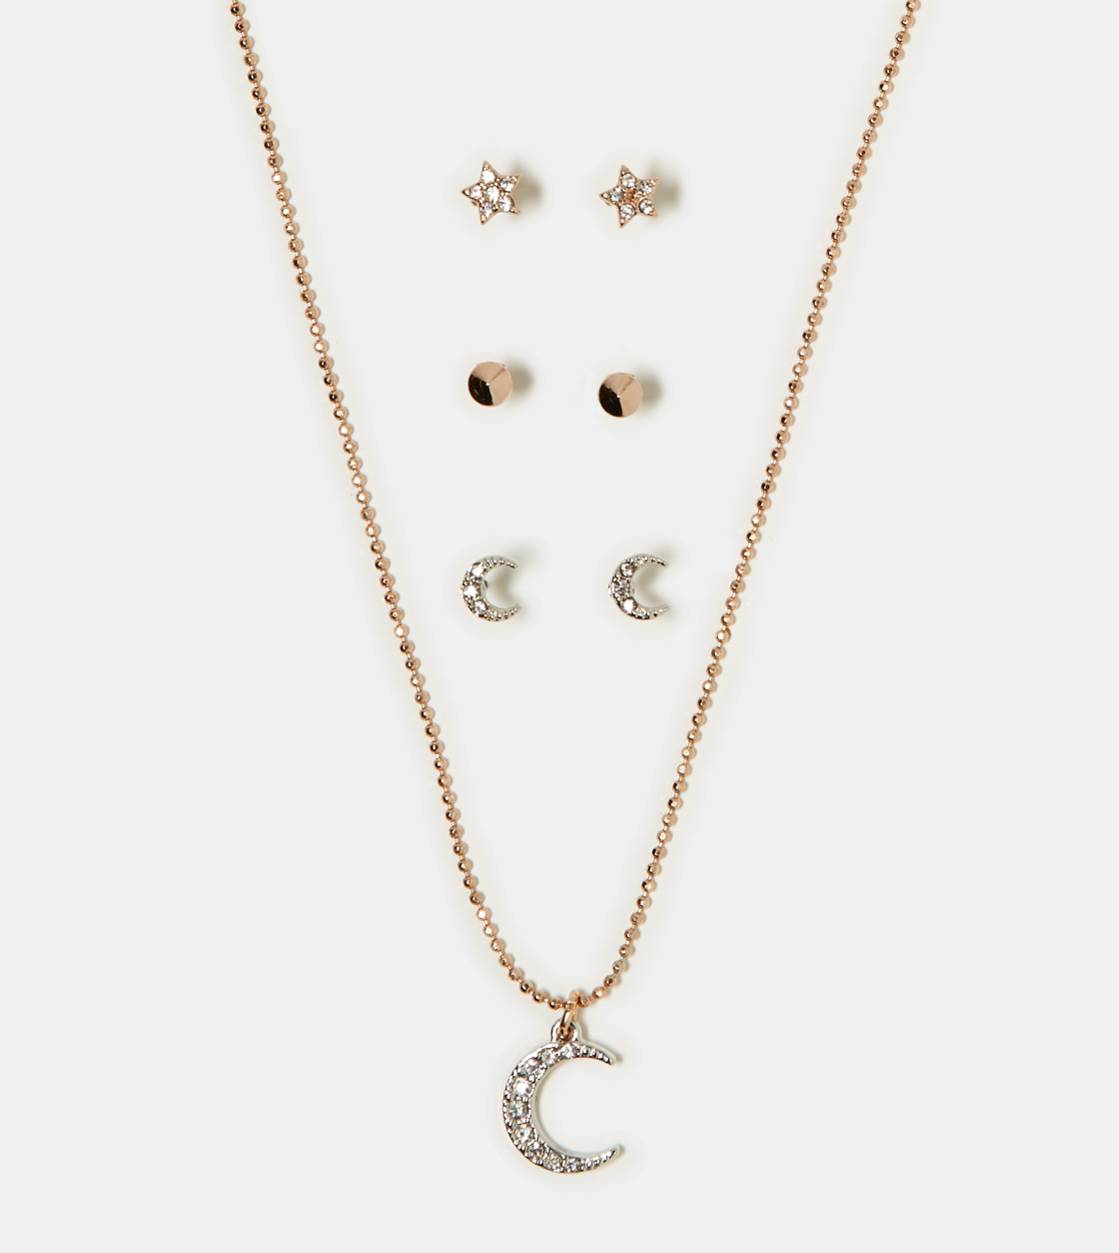 Mixed Metal AEO Gemstone Necklace & Stud Set